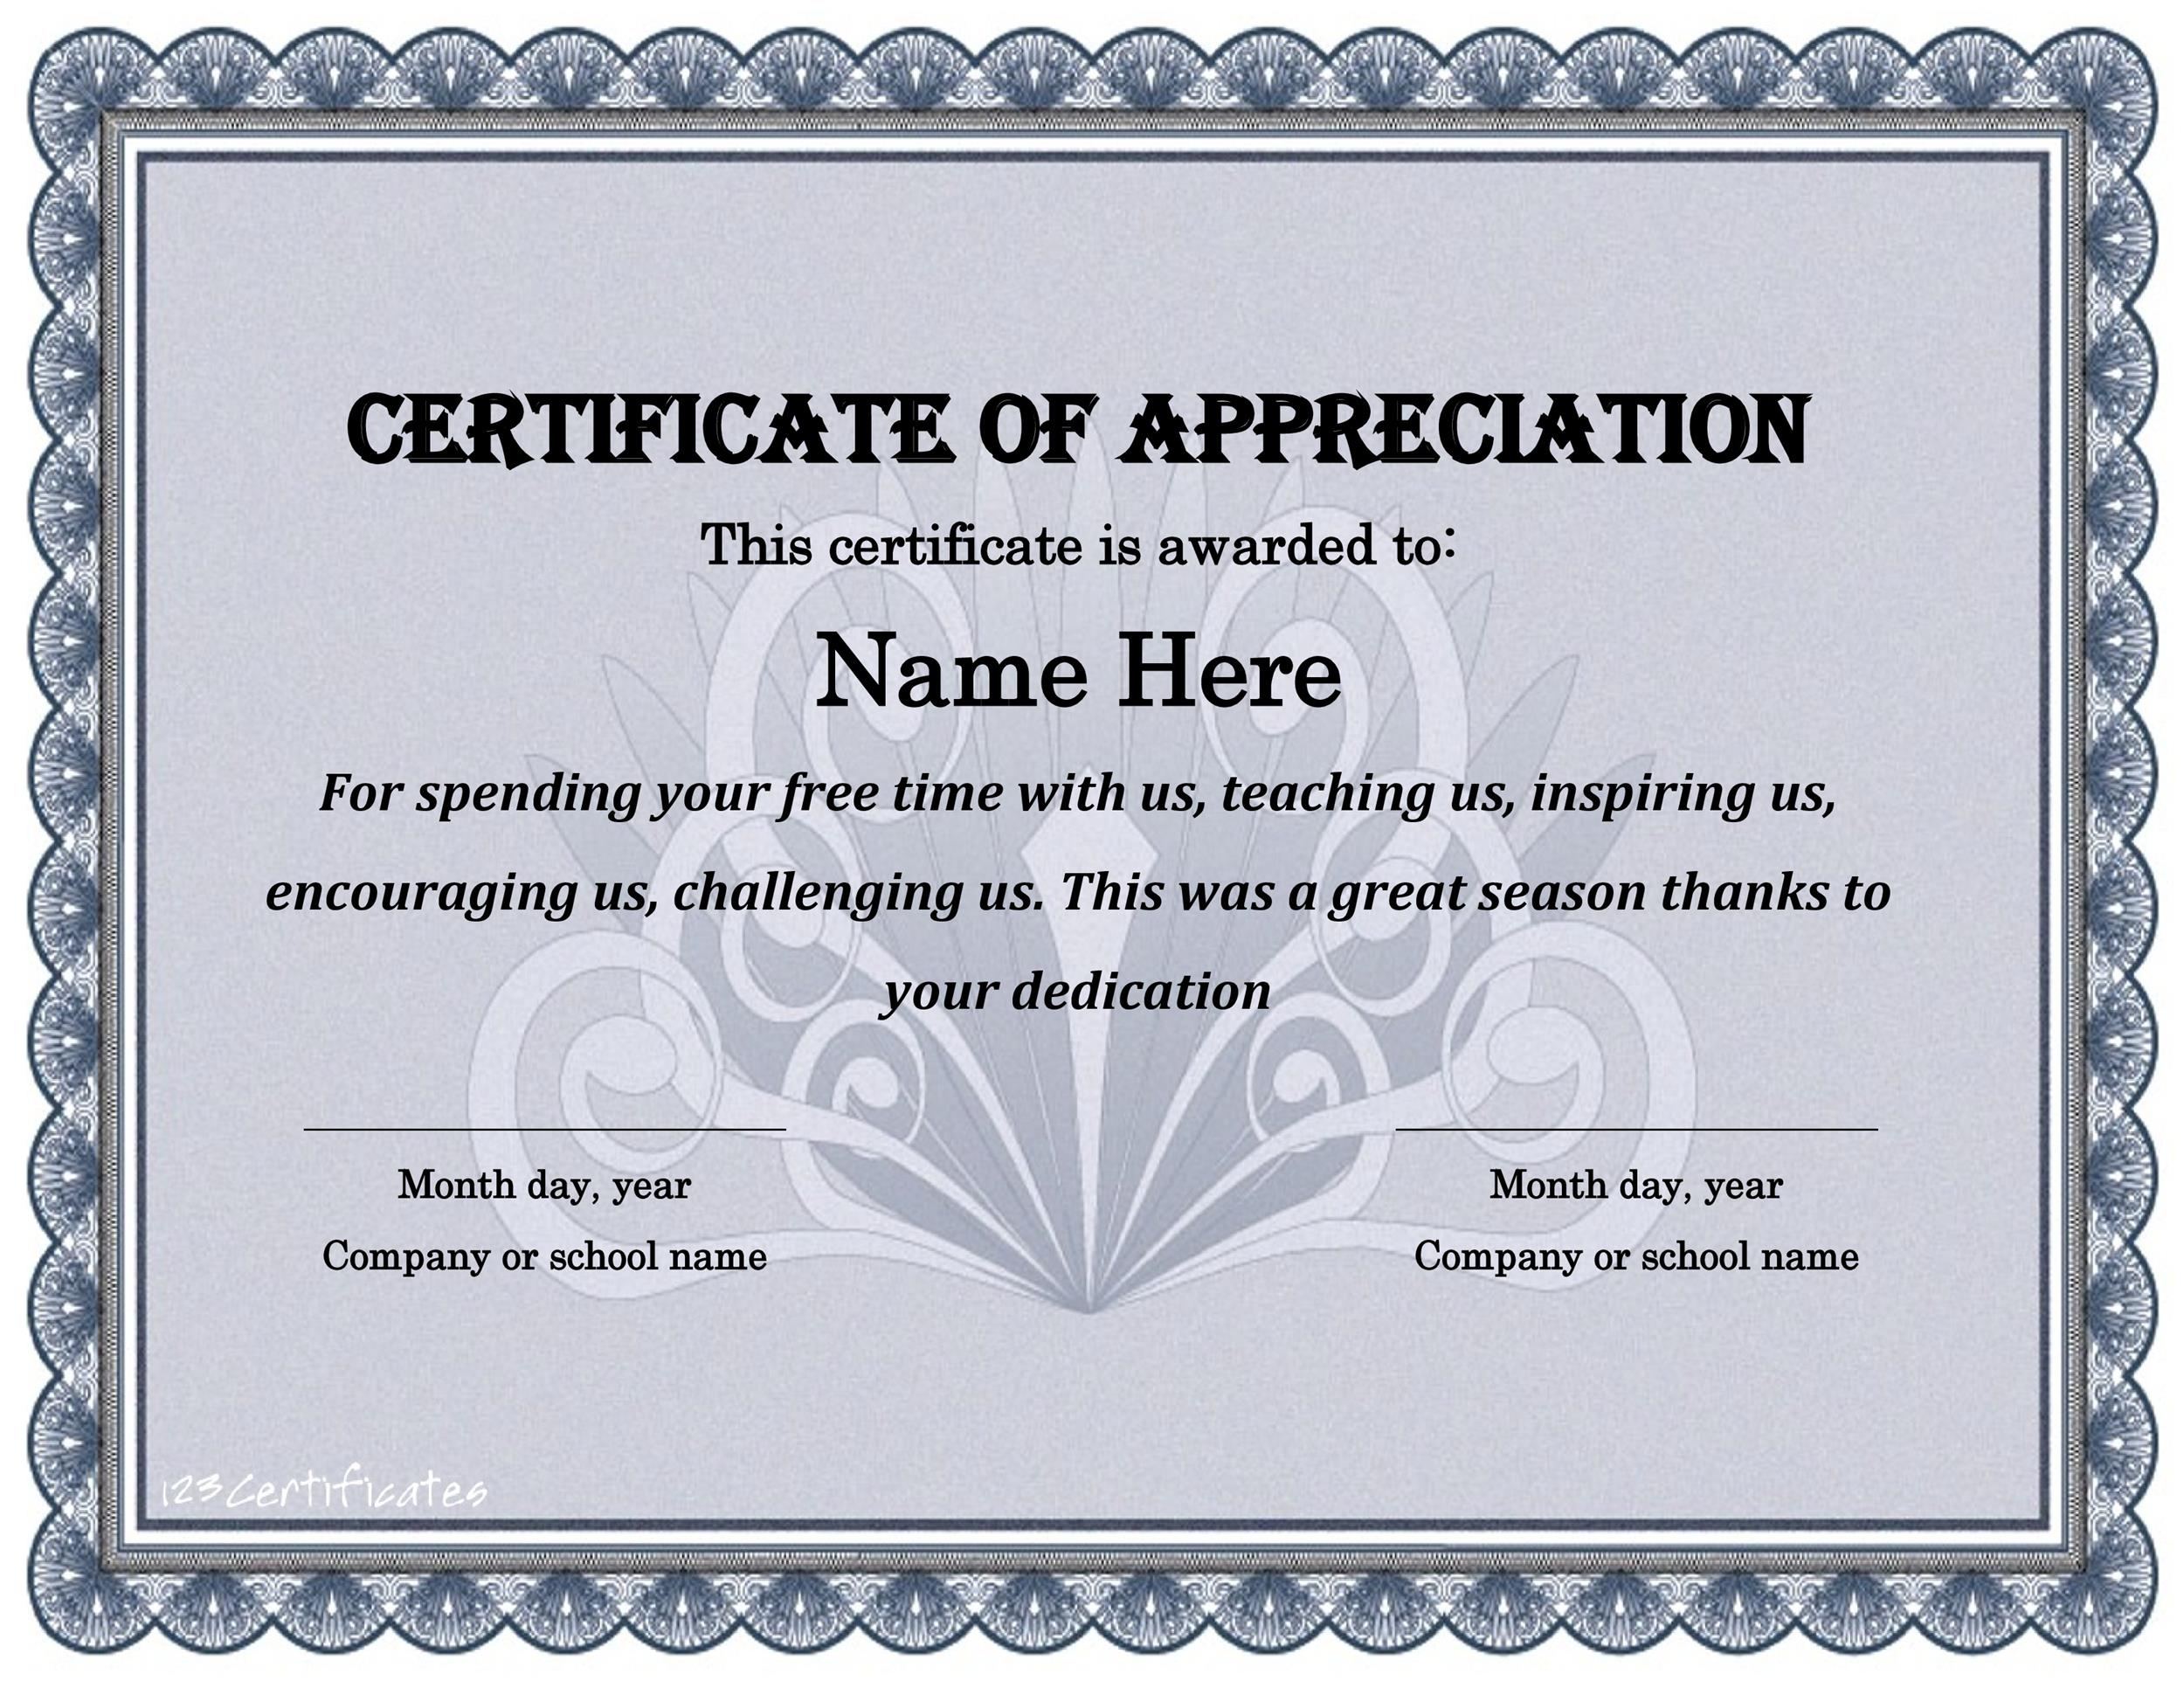 30 free certificate of appreciation templates and letters printable certificate of appreciation 21 yelopaper Gallery